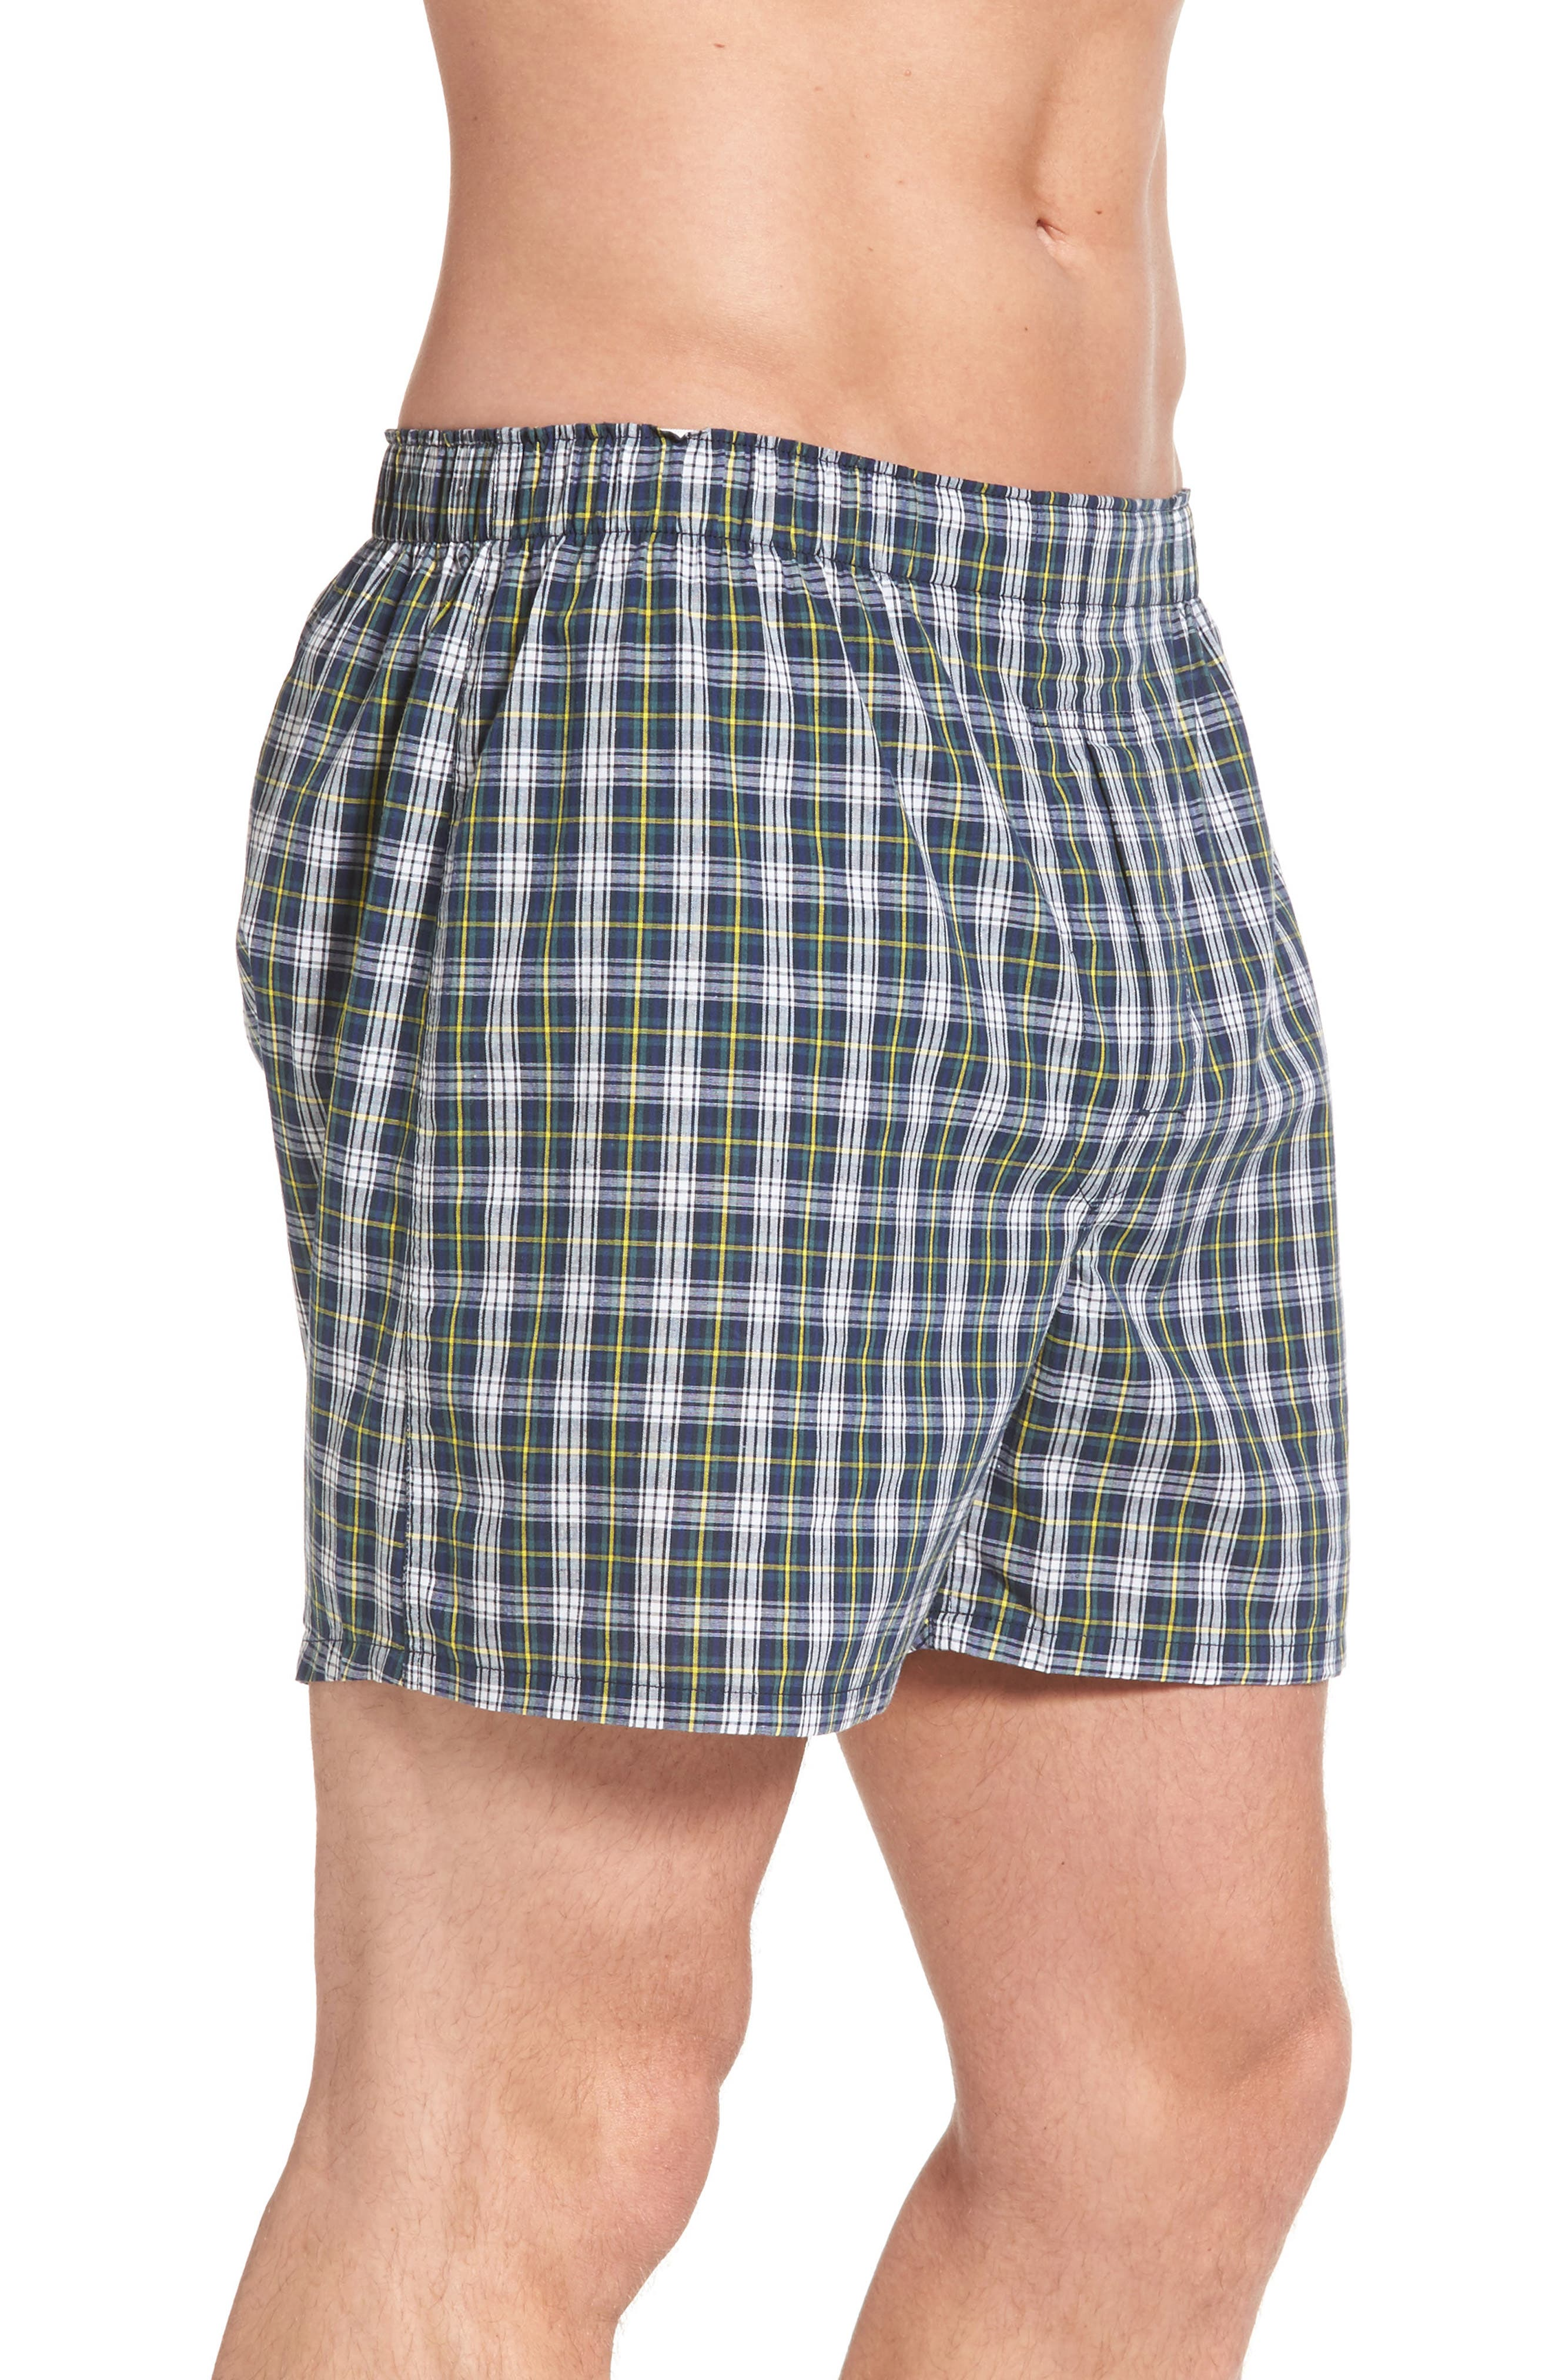 Assorted 3-Pack Woven Cotton Boxers,                             Alternate thumbnail 4, color,                             Blue/ Green Plaid/ Navy Plaid